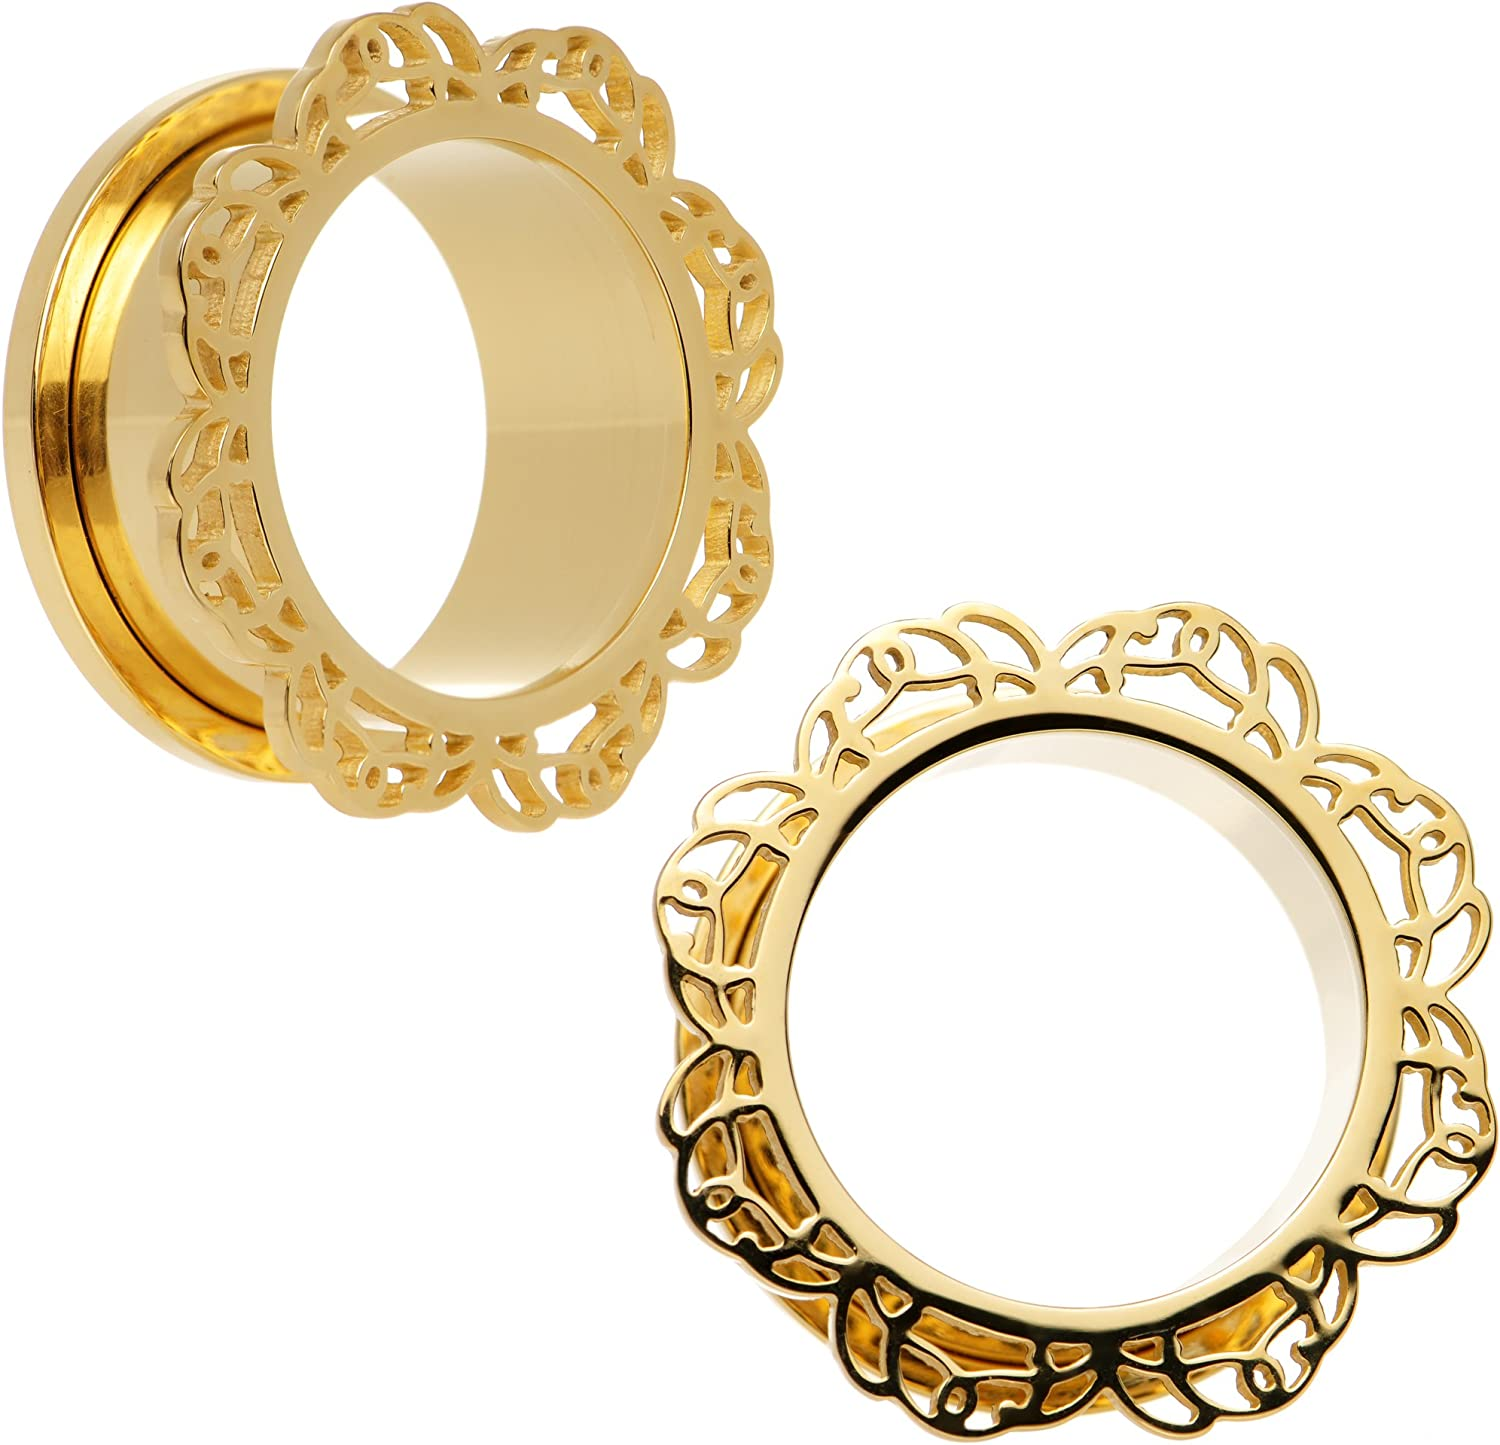 Body Candy Gold PVD Stainless Steel Filigree Flower Screw Fit Tunnel Ear Gauge Plug Set 7/8